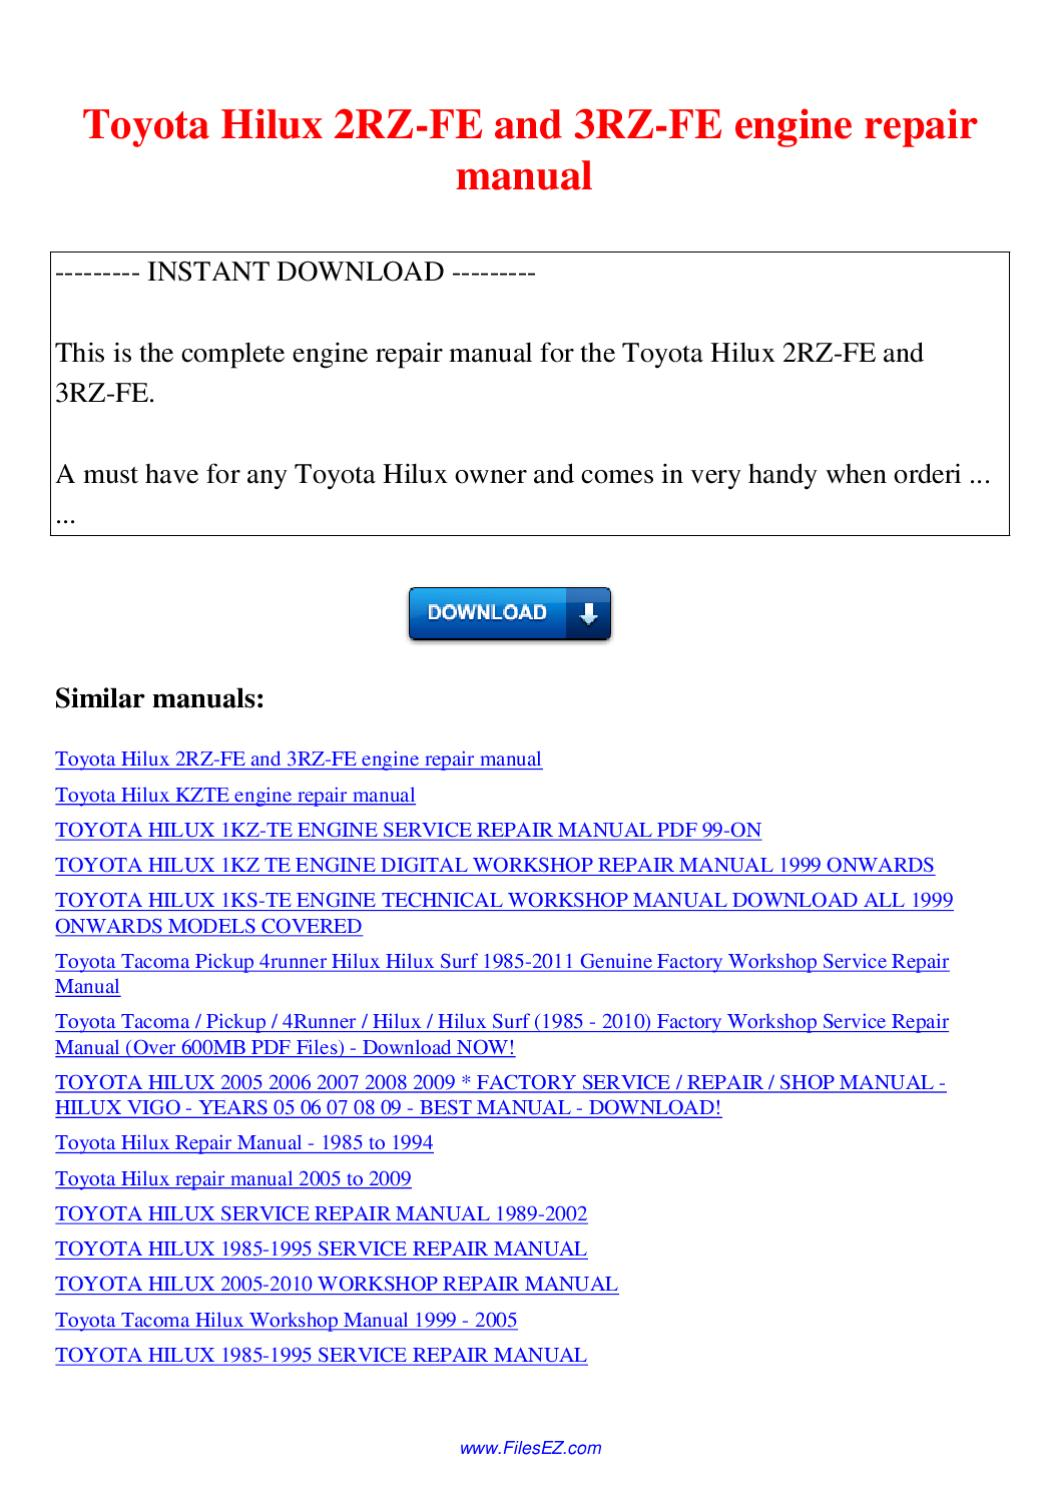 ... service Array - toyota hilux 2rz fe and 3rz fe engine repair manual by  nana hong issuu ...